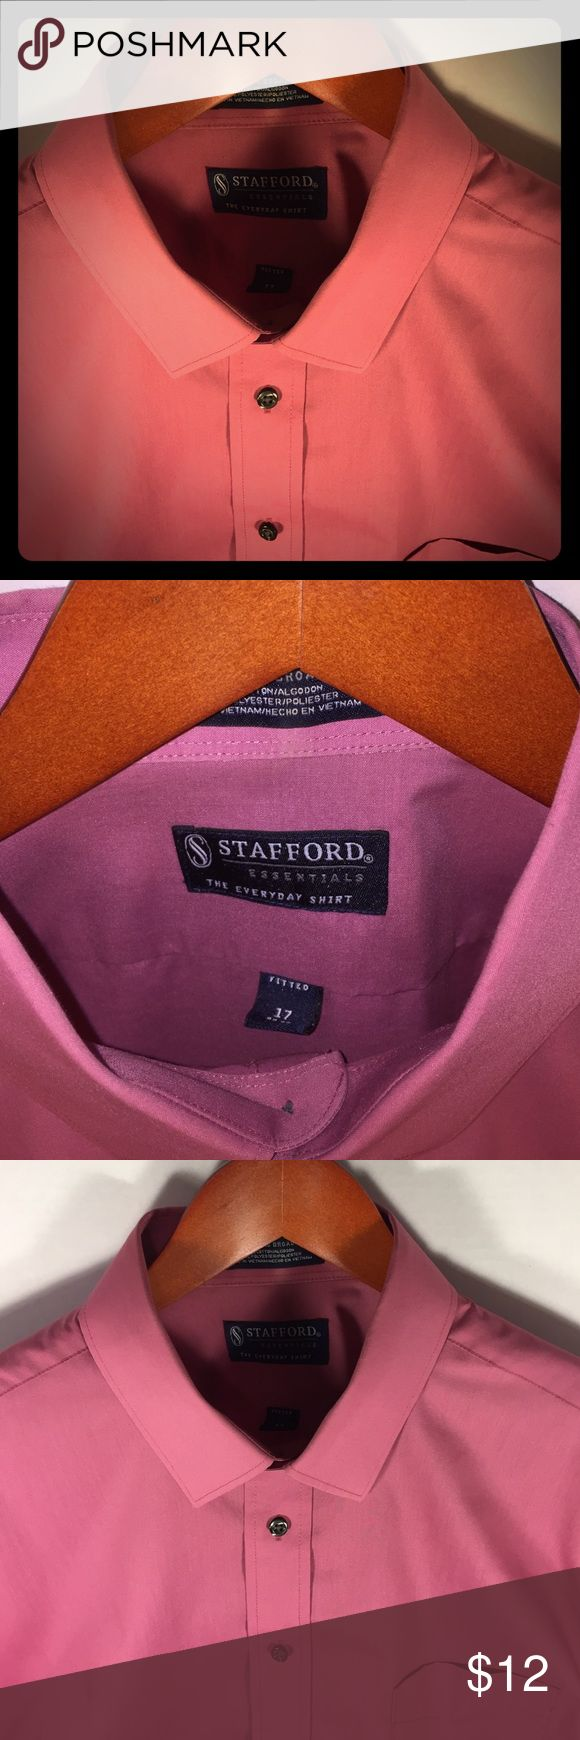 Stafford Essentials Salmon Dress Shirt Up for sale is a Stafford Essentials salmon dress shirt, neck 17, size 34-35. 60% cotton, 40% polyester. Bought new, worn only a few times. Stafford Shirts Dress Shirts